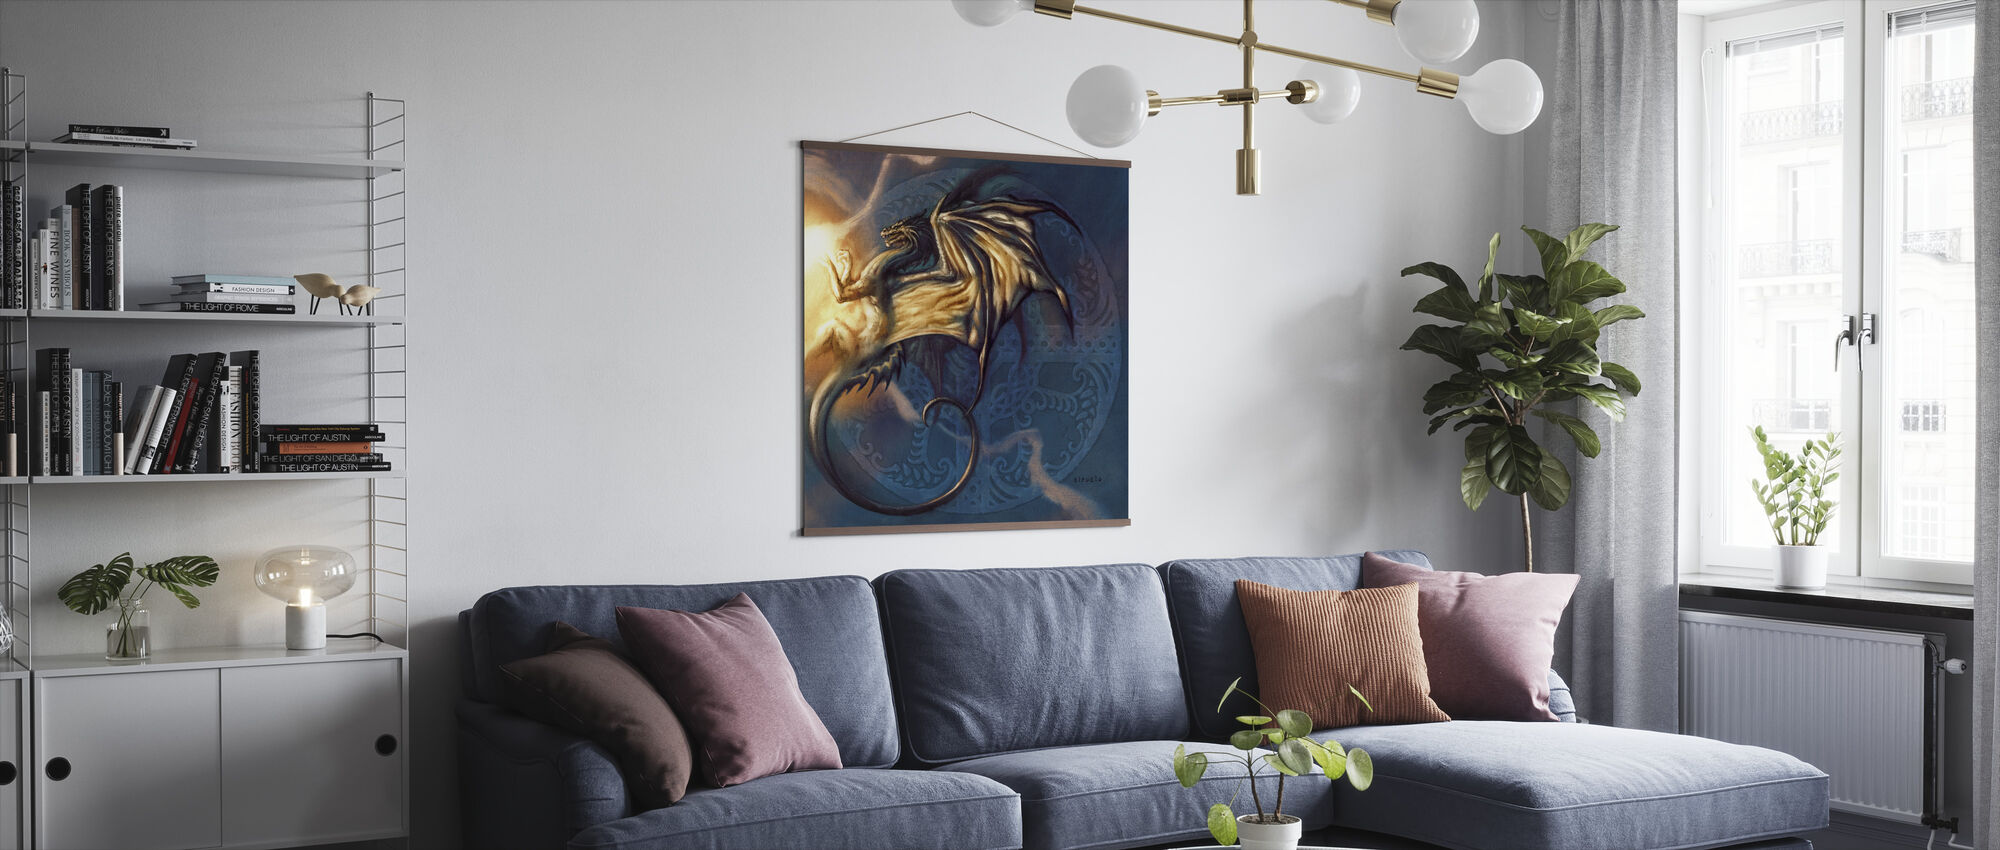 Dragon - Poster - Living Room